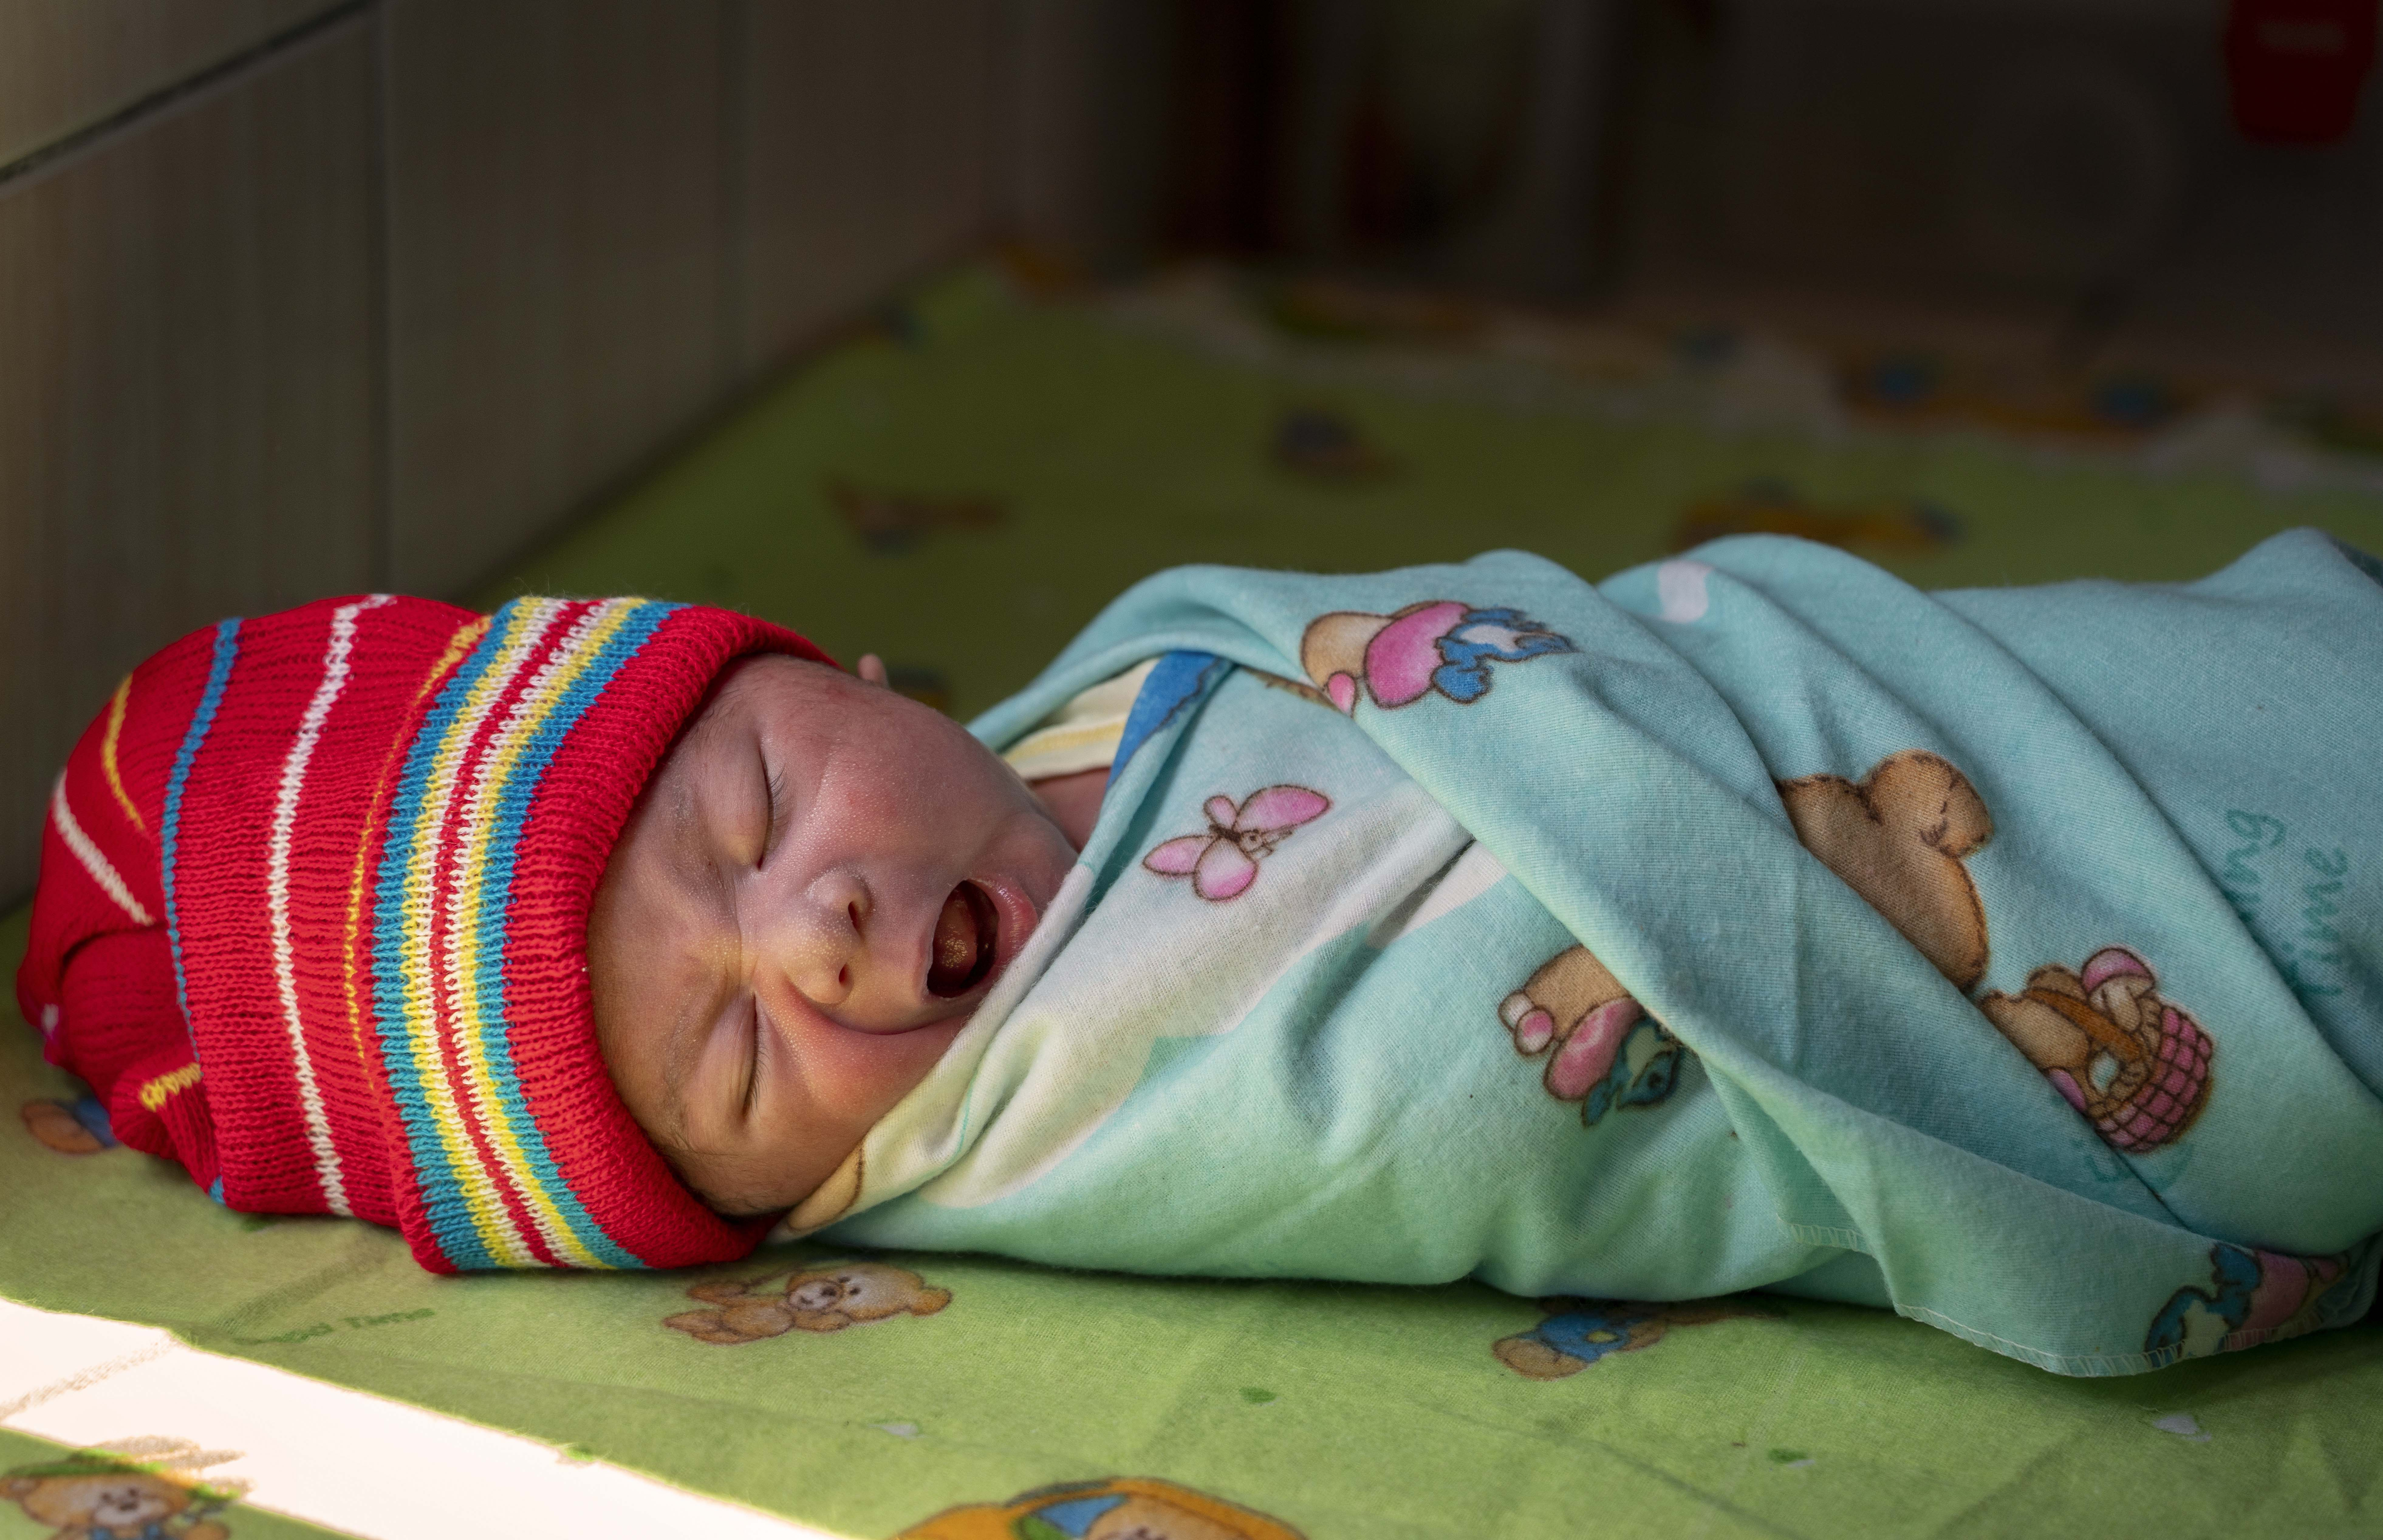 Latter-day Saint Charities provides training and equipment for attendants to support the care and resuscitation of newborns at birth in addition to improving maternal survival following births.